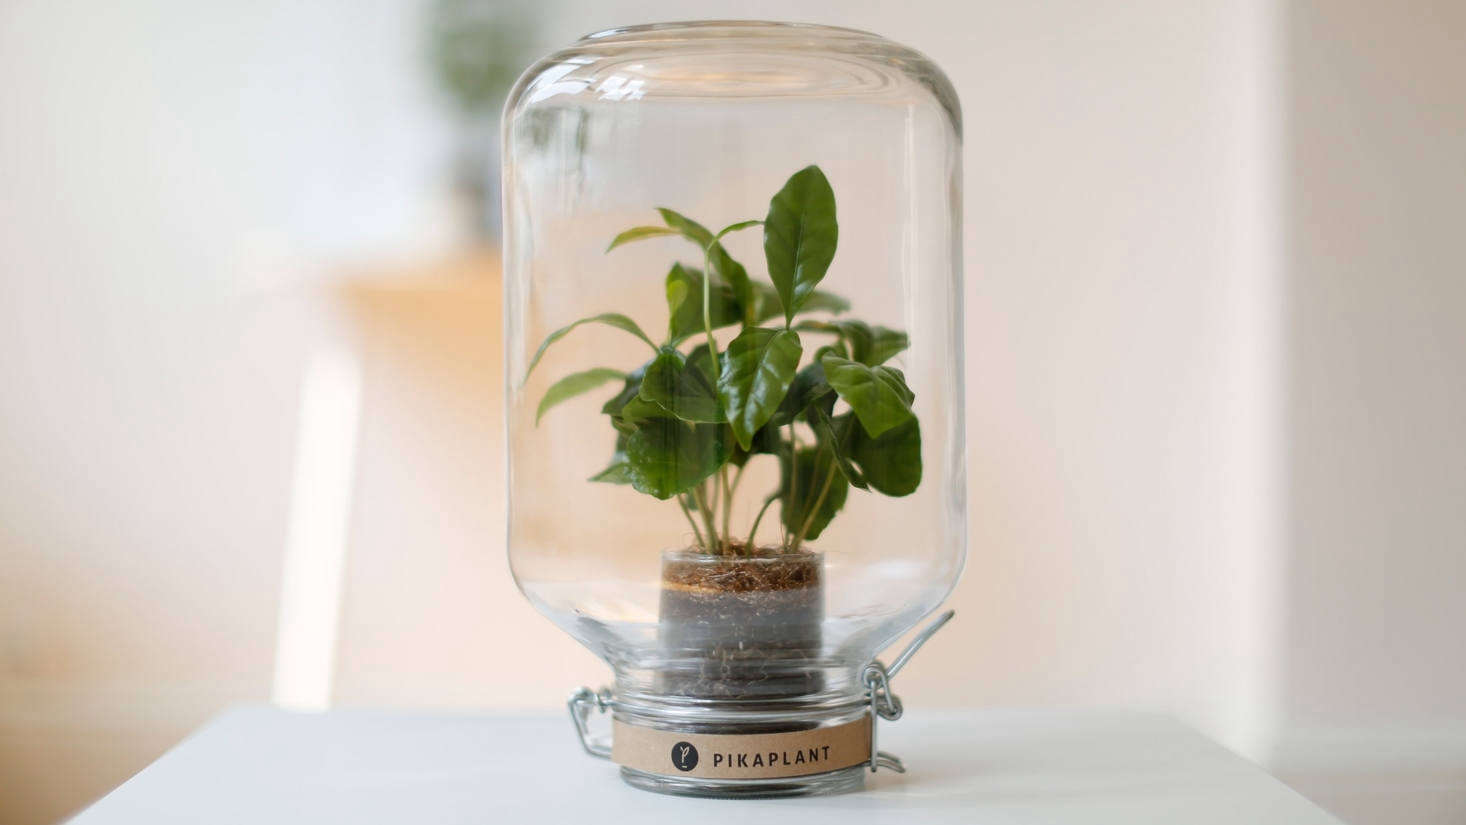 Perfect gifts for plant lovers include this self-watering (yes, you heard that right) Pikaplant. See more of the editors picks for this gifting season in Gift Guide : For the Plant Lover.